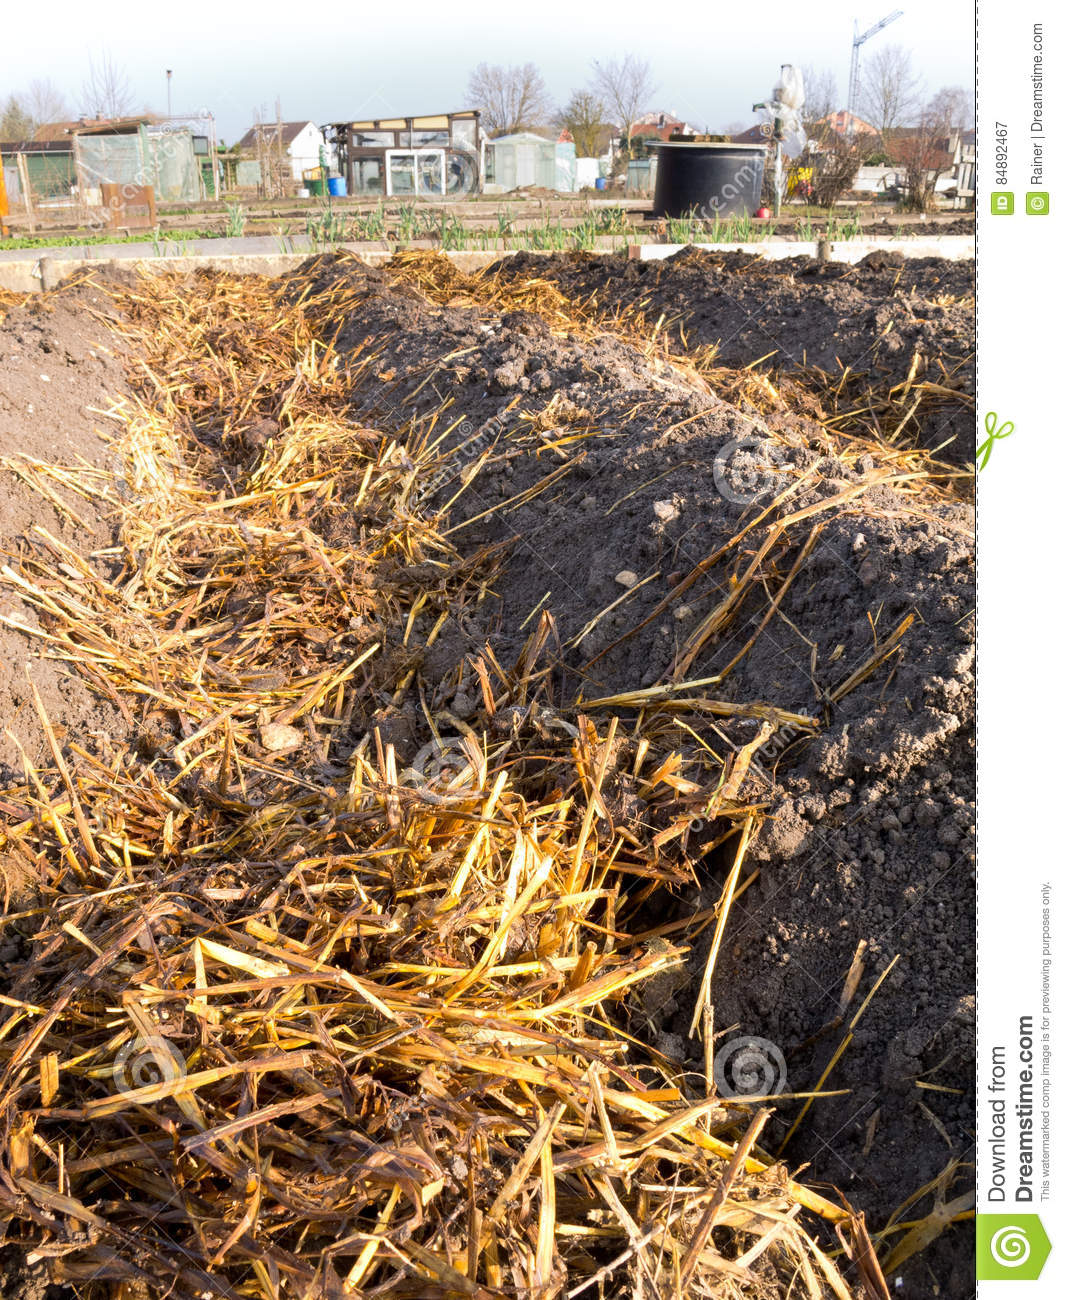 Sheep Dung On Vegetable Garden Soil Stock Image - Image of natural ...